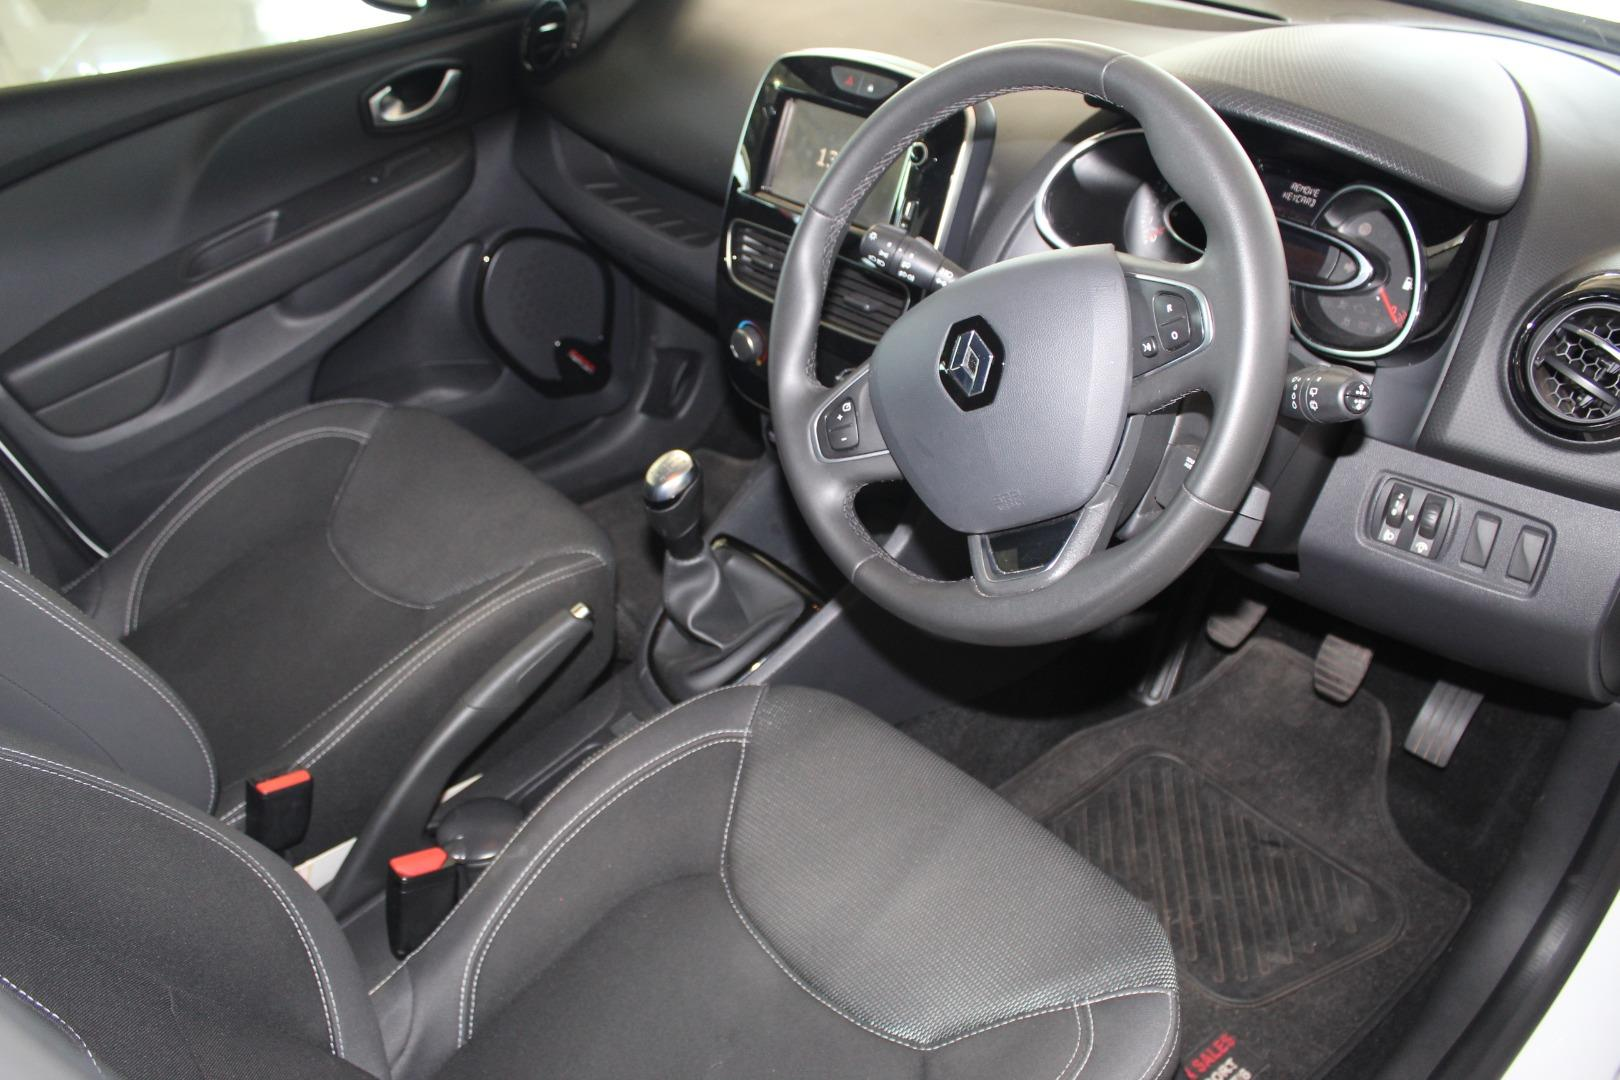 2018 Renault Clio 66kW Turbo Expression- Picture 5